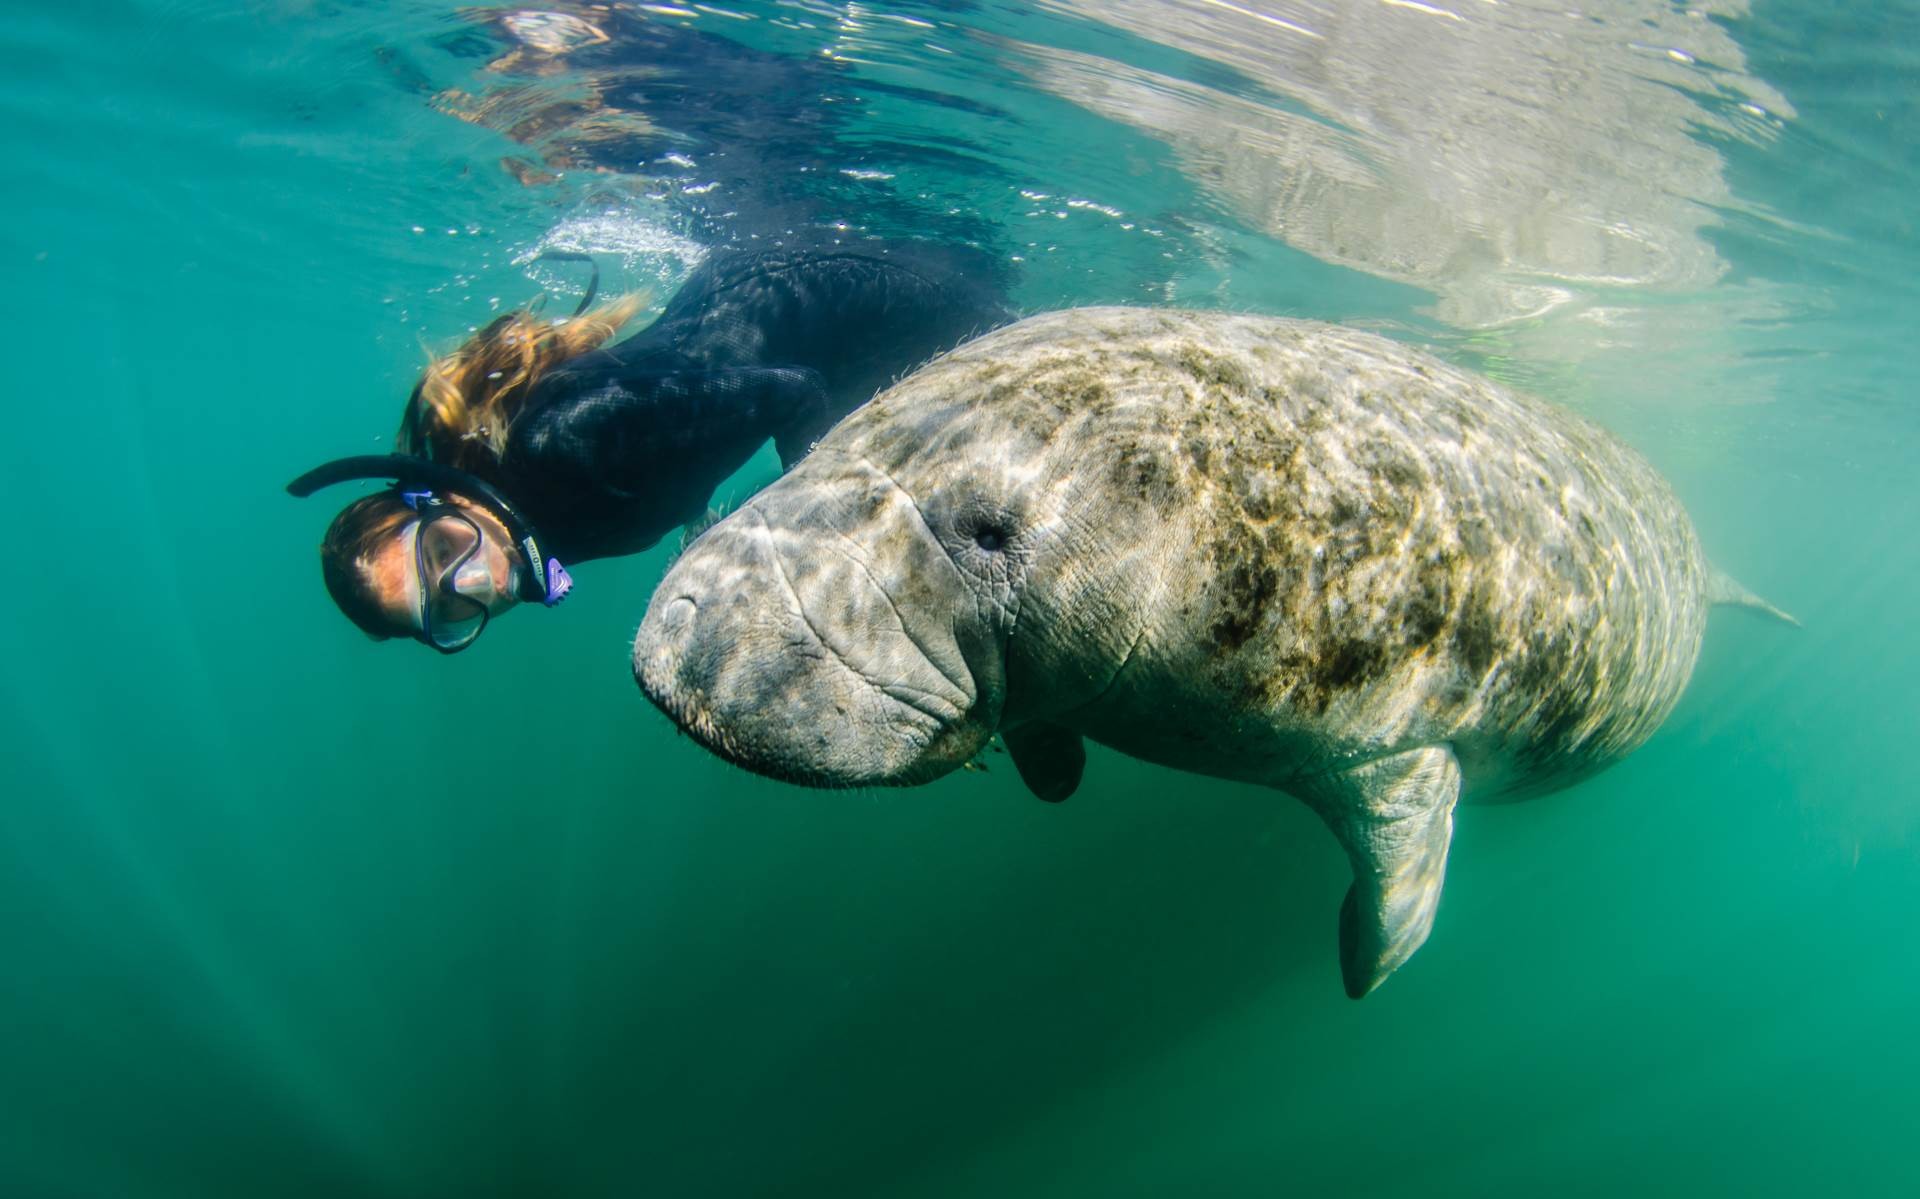 Interacting with manatees in Crystal River, Florida